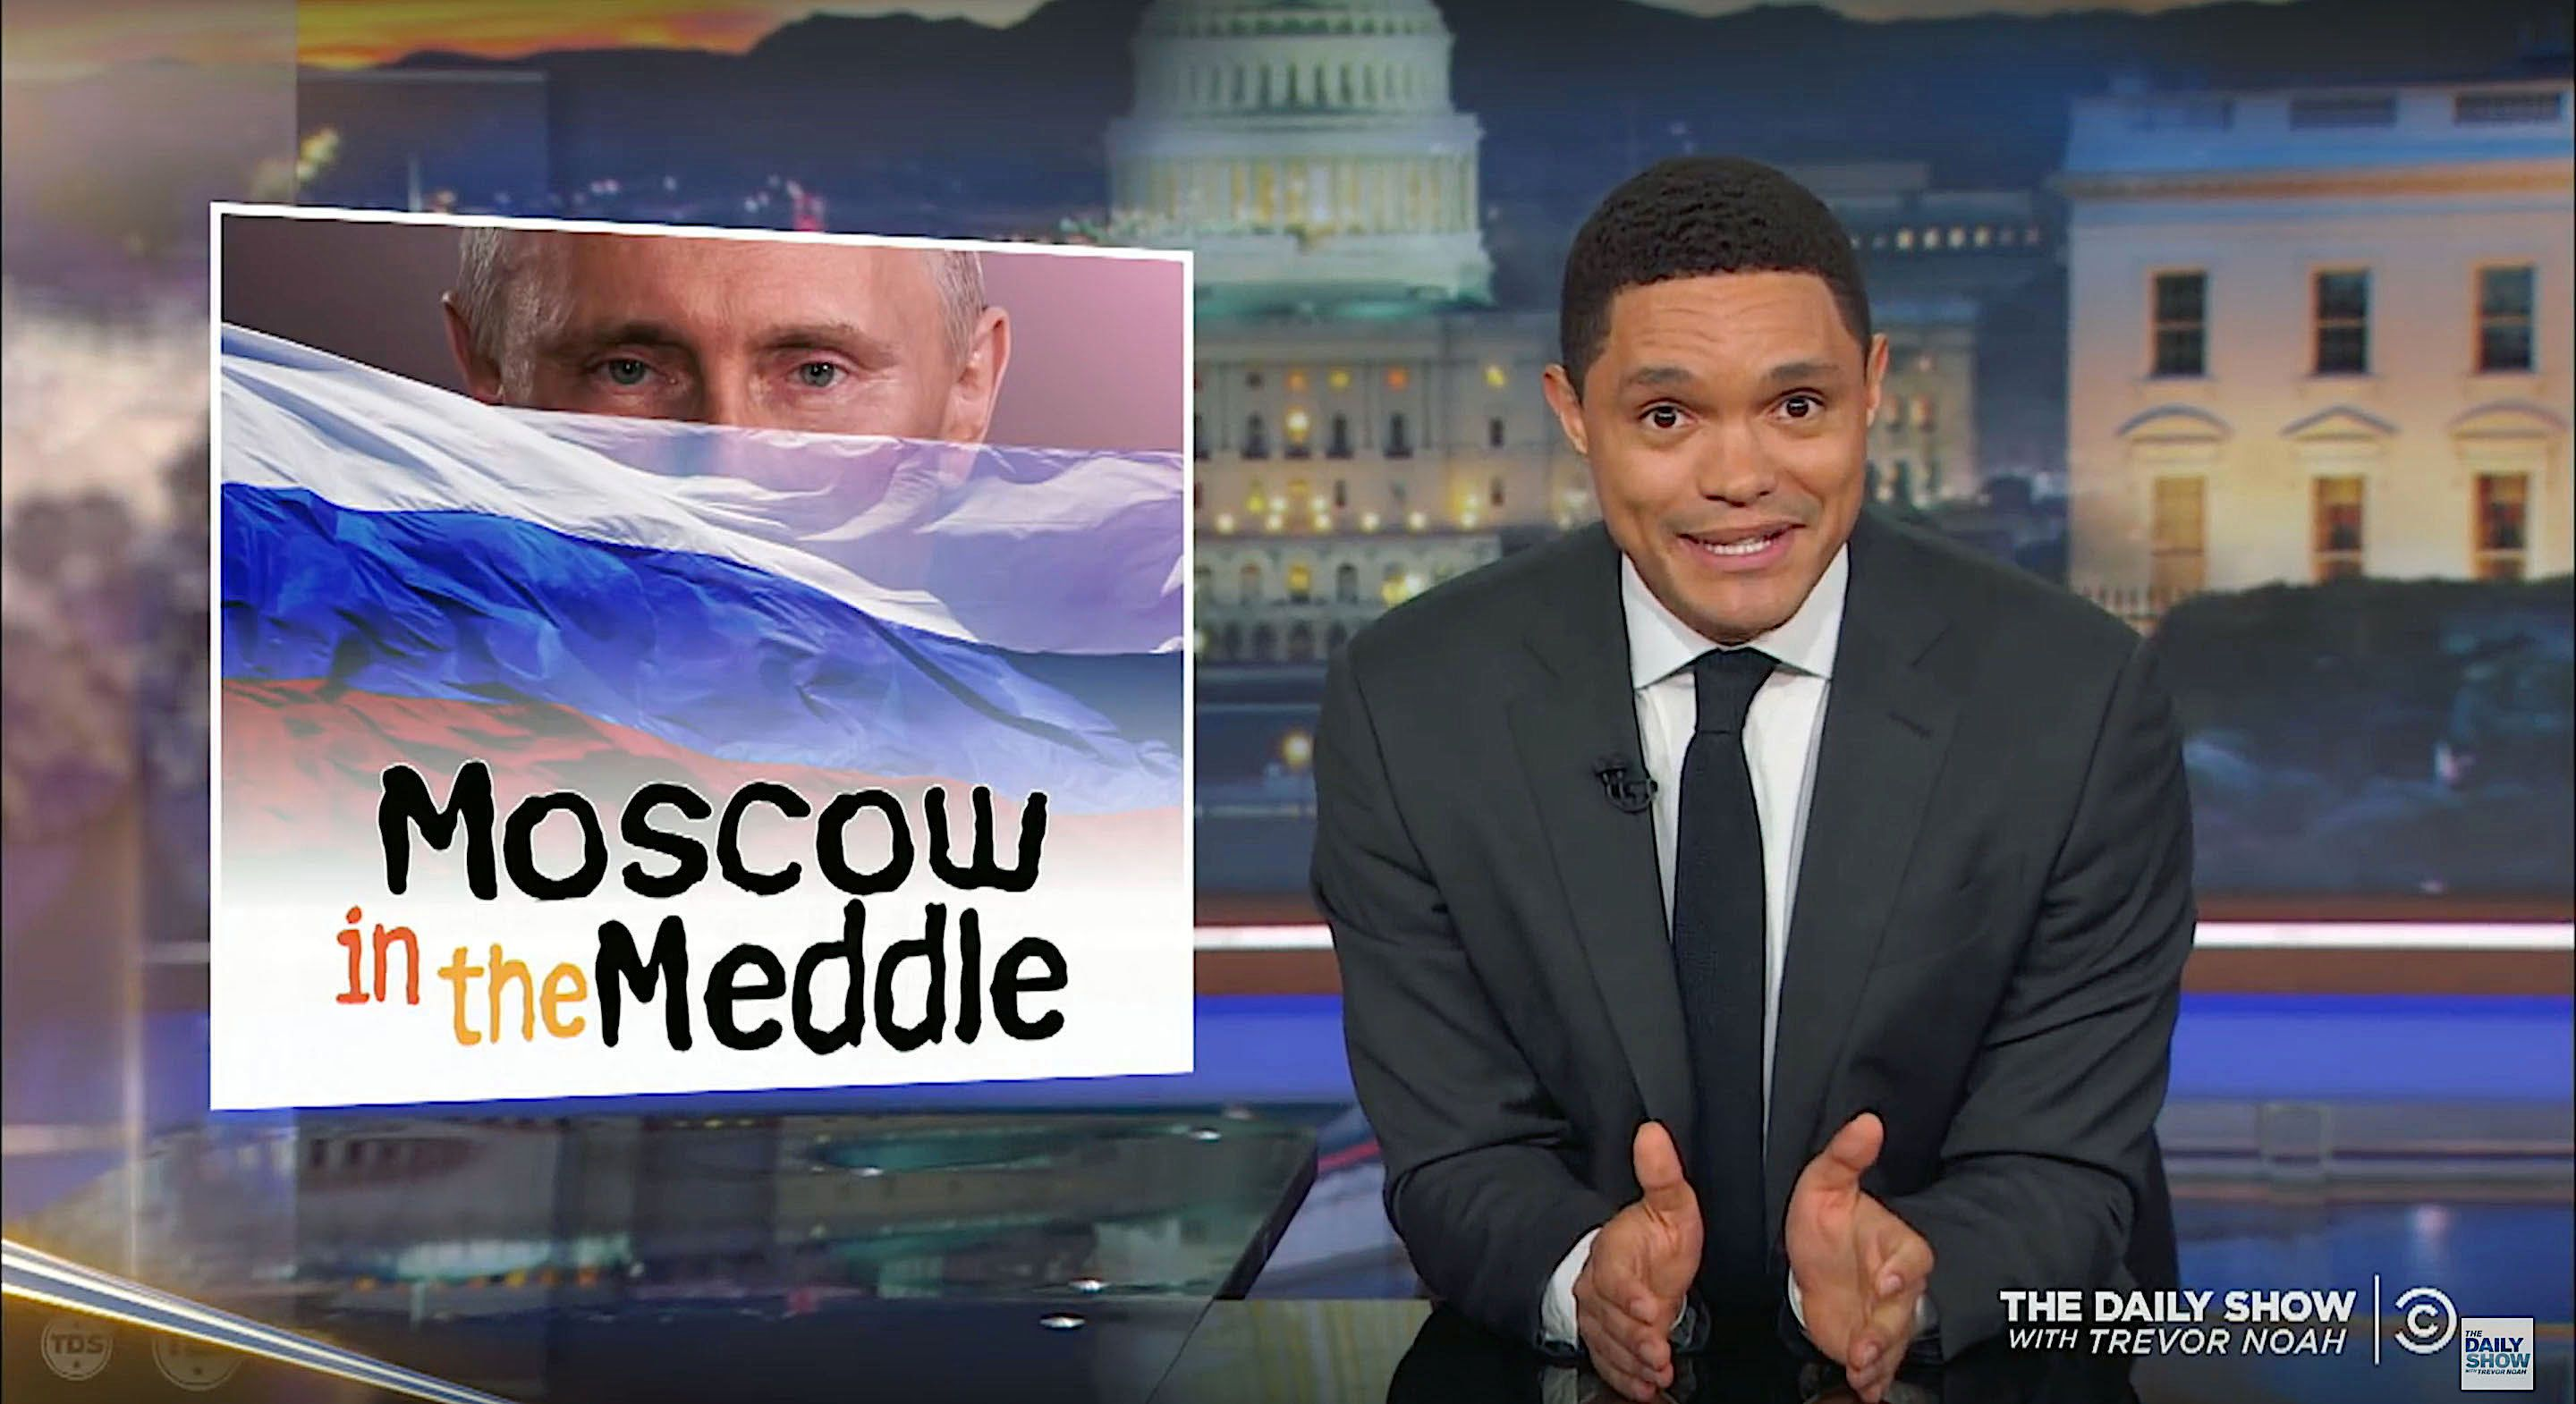 Trevor Noah of The Daily Show analyzes the Trump-Putin news conference